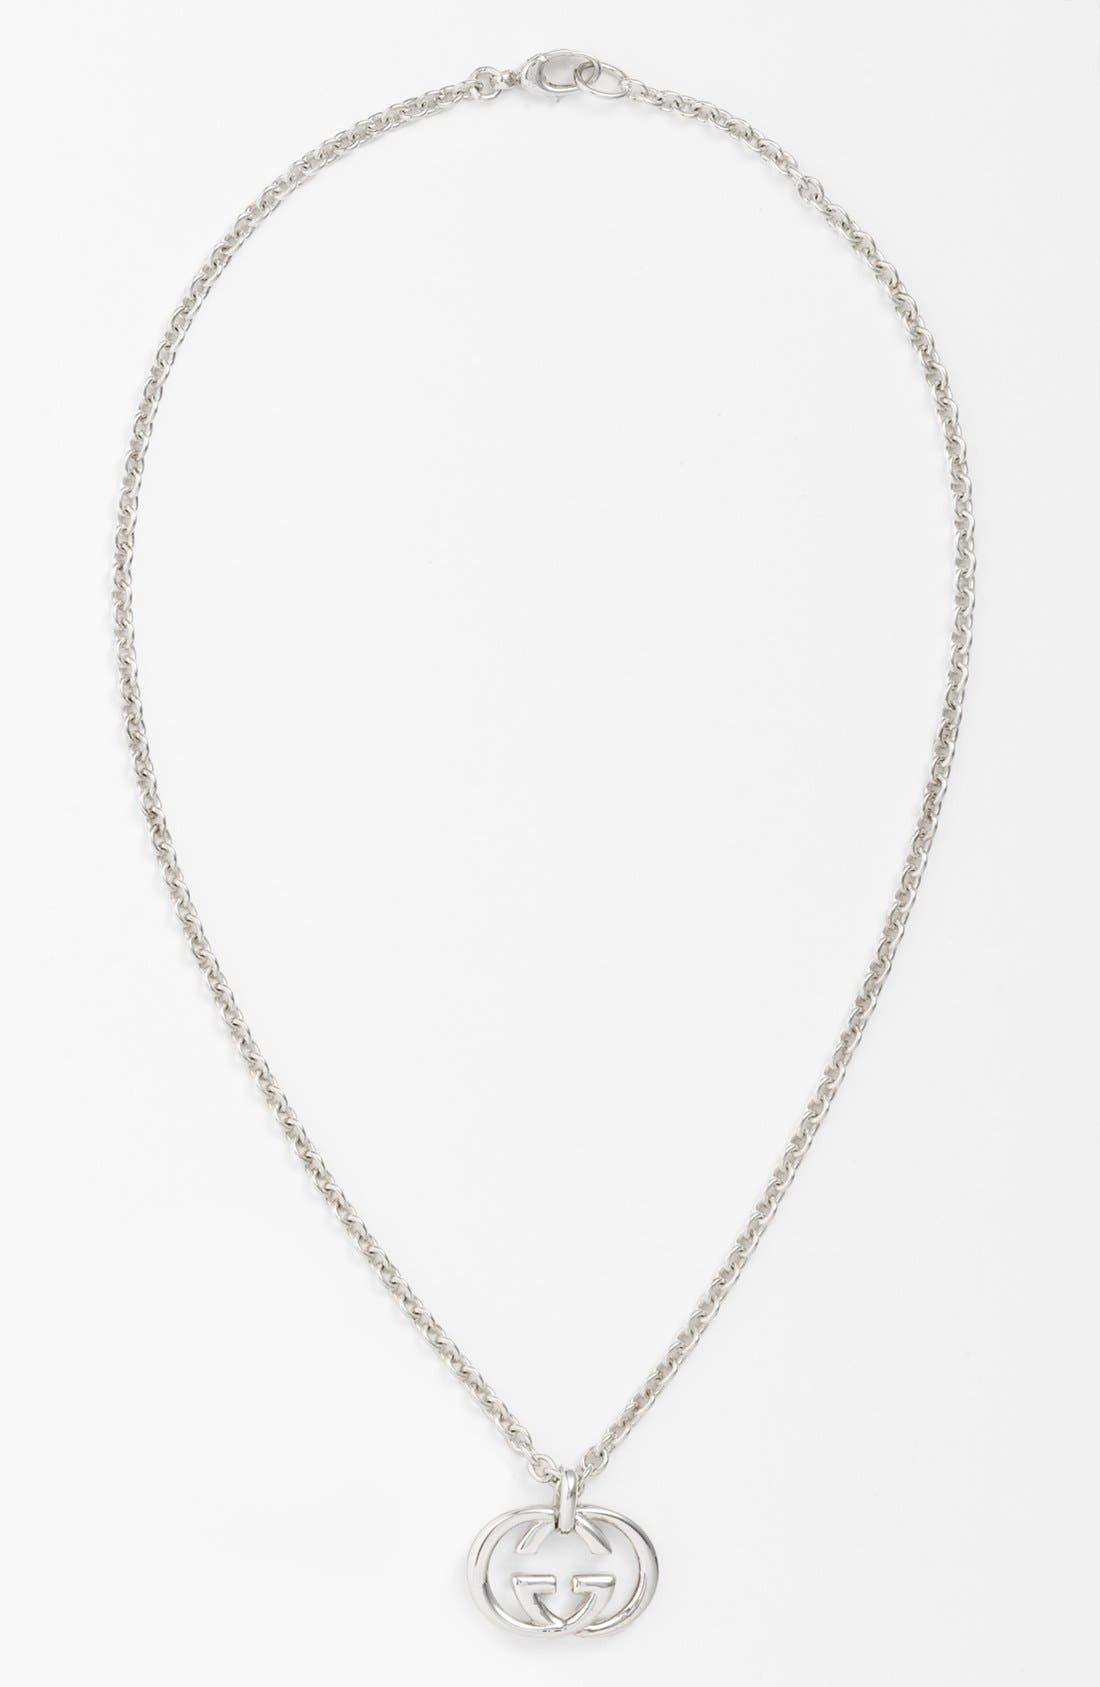 gucci necklace mens. main image - gucci \u0027silver britt\u0027 necklace mens a